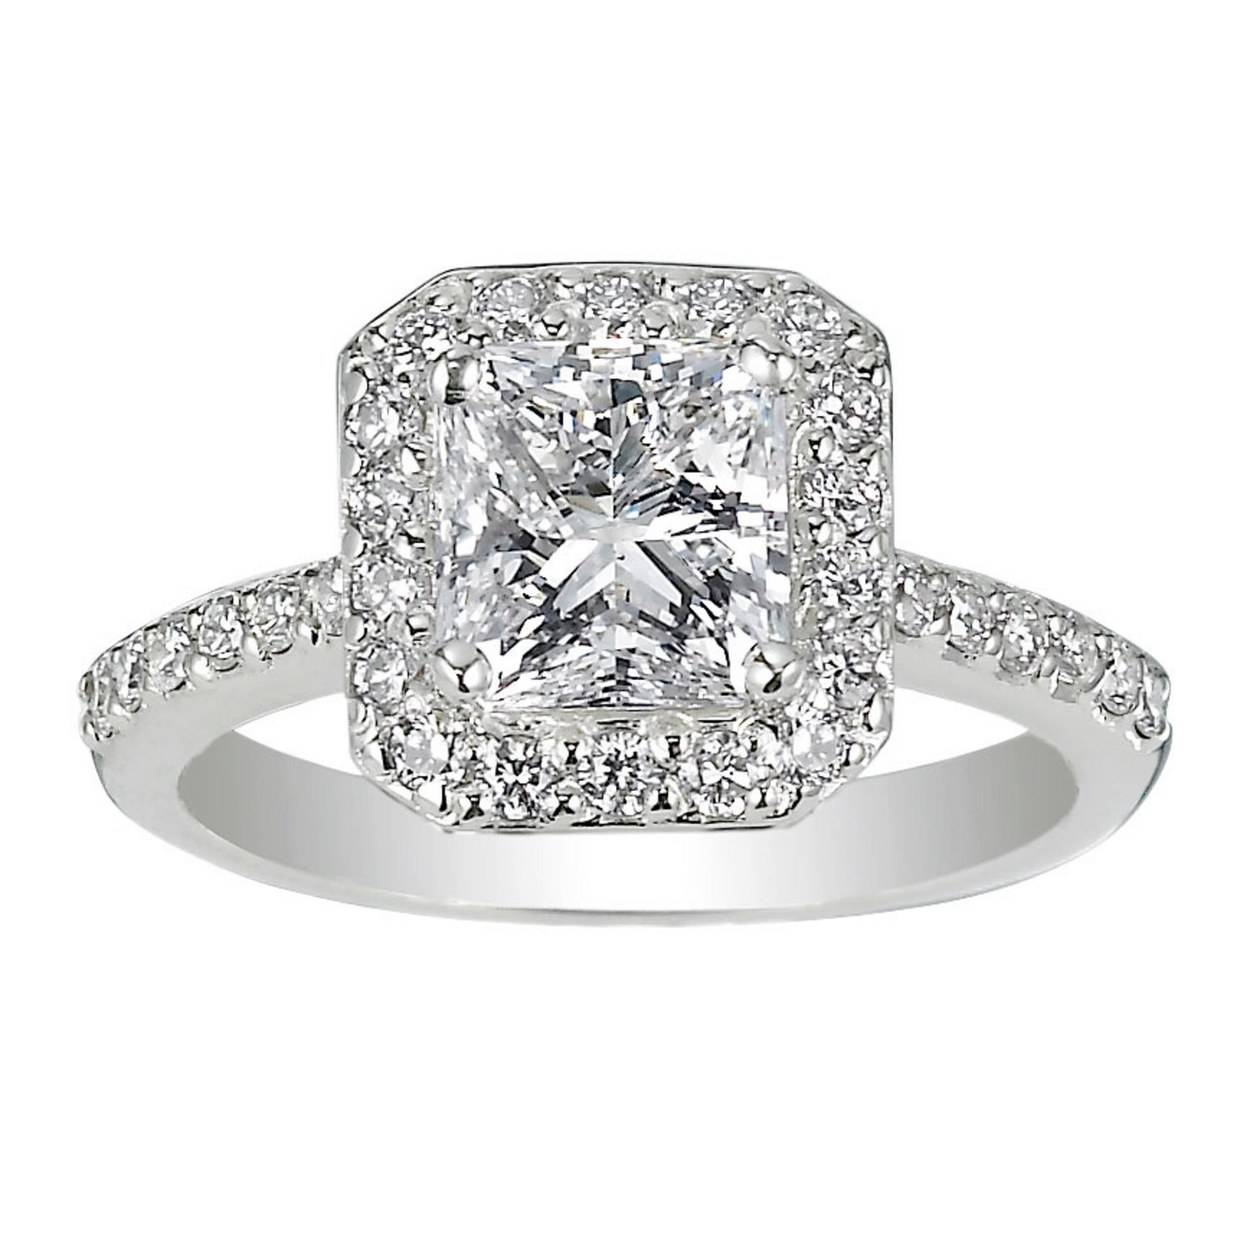 62 Diamond Engagement Rings Under $5,000 | Glamour Within Engagement Rings Under 700 (Gallery 3 of 15)